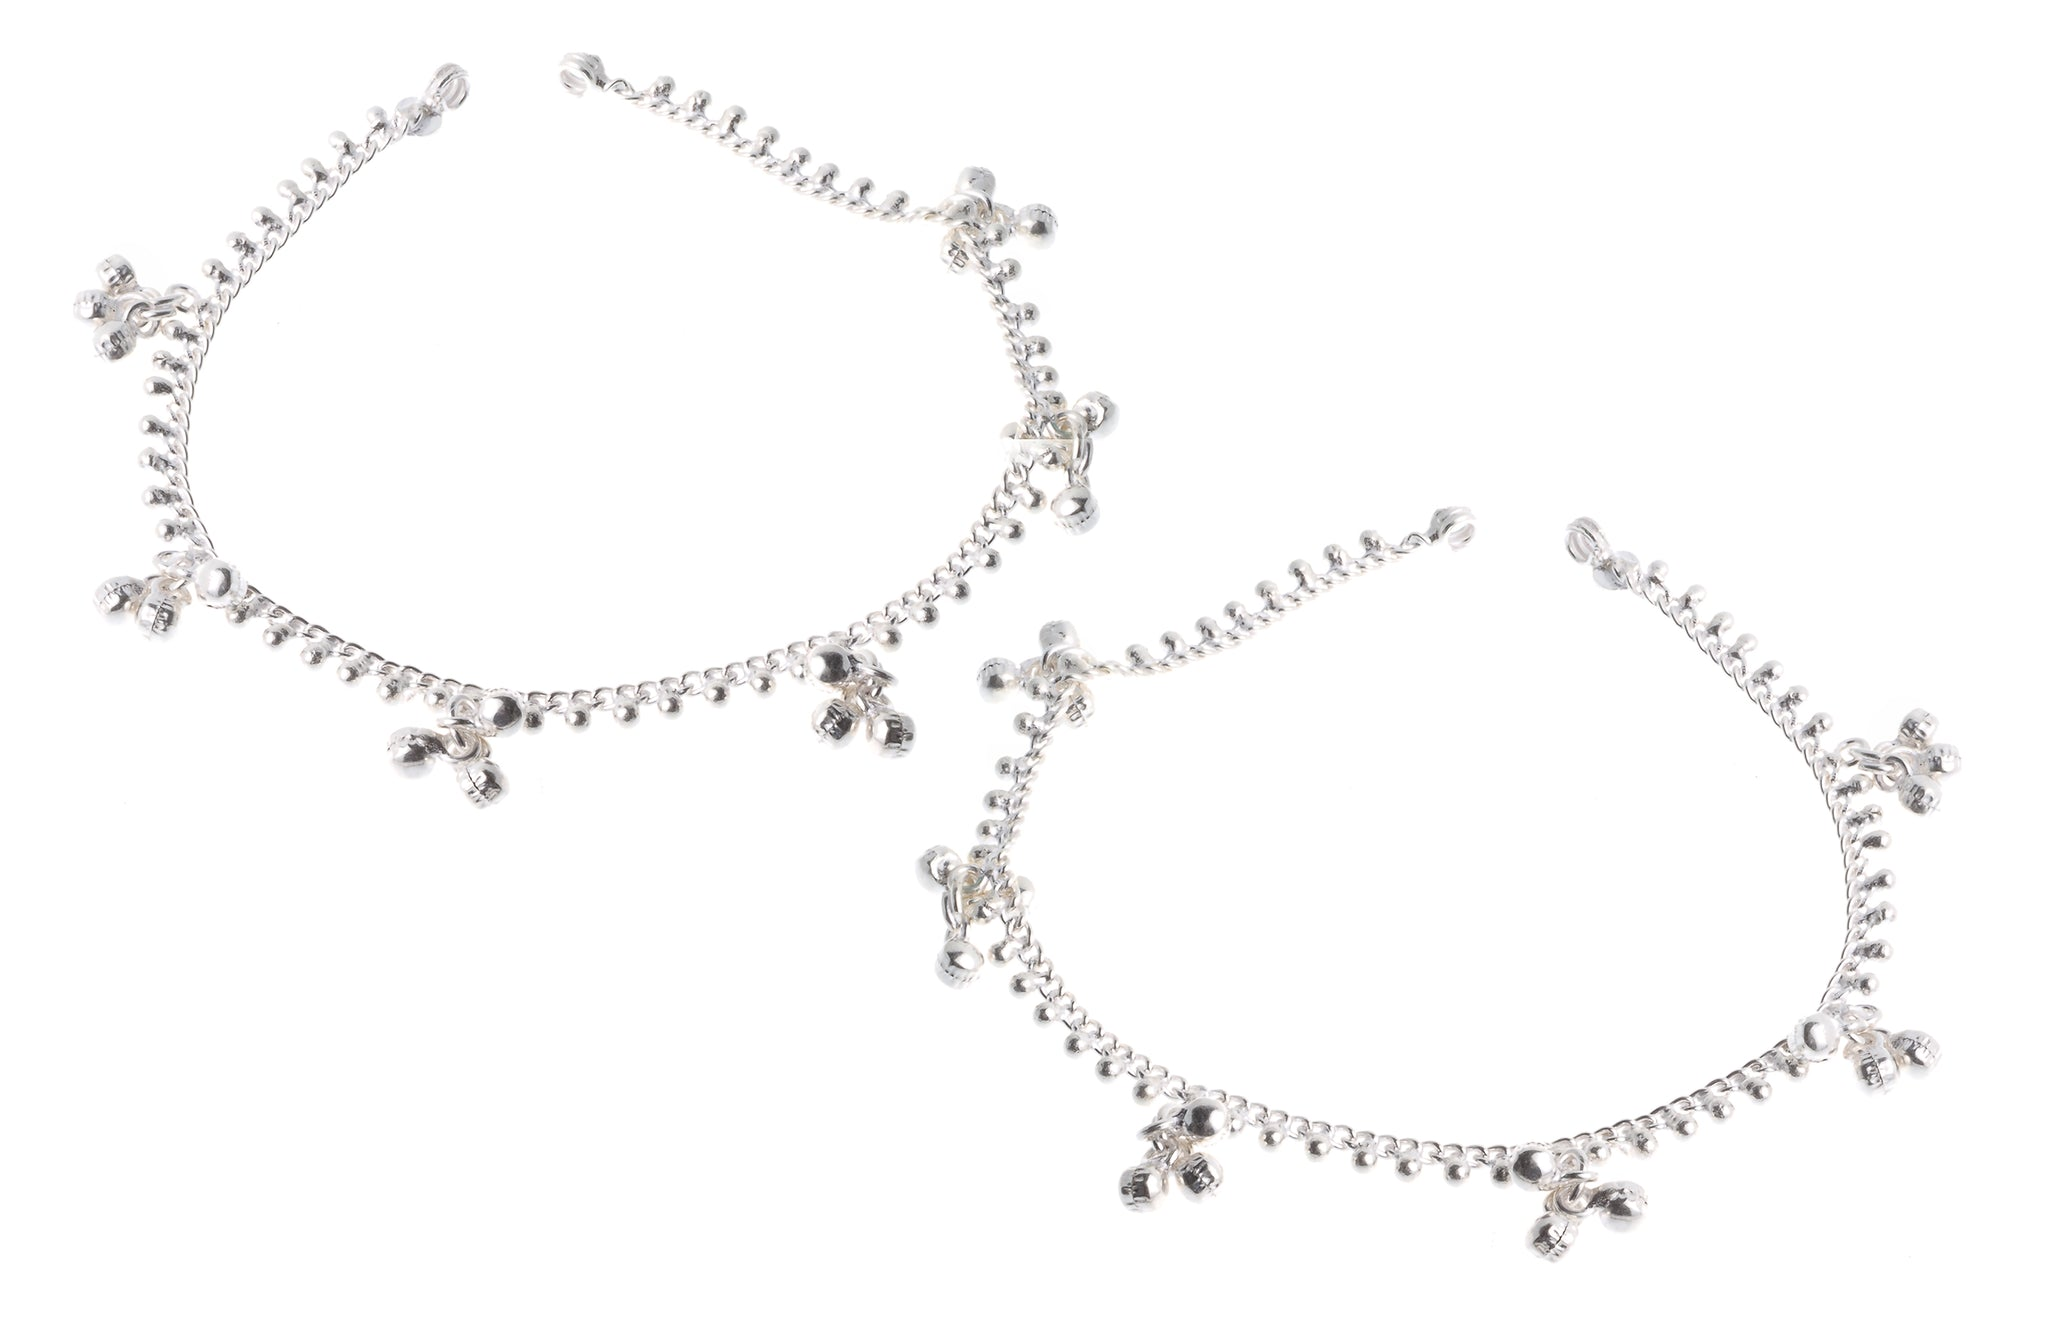 Silver Anklets with Ghughri Bell Charms A-7161 - Pair